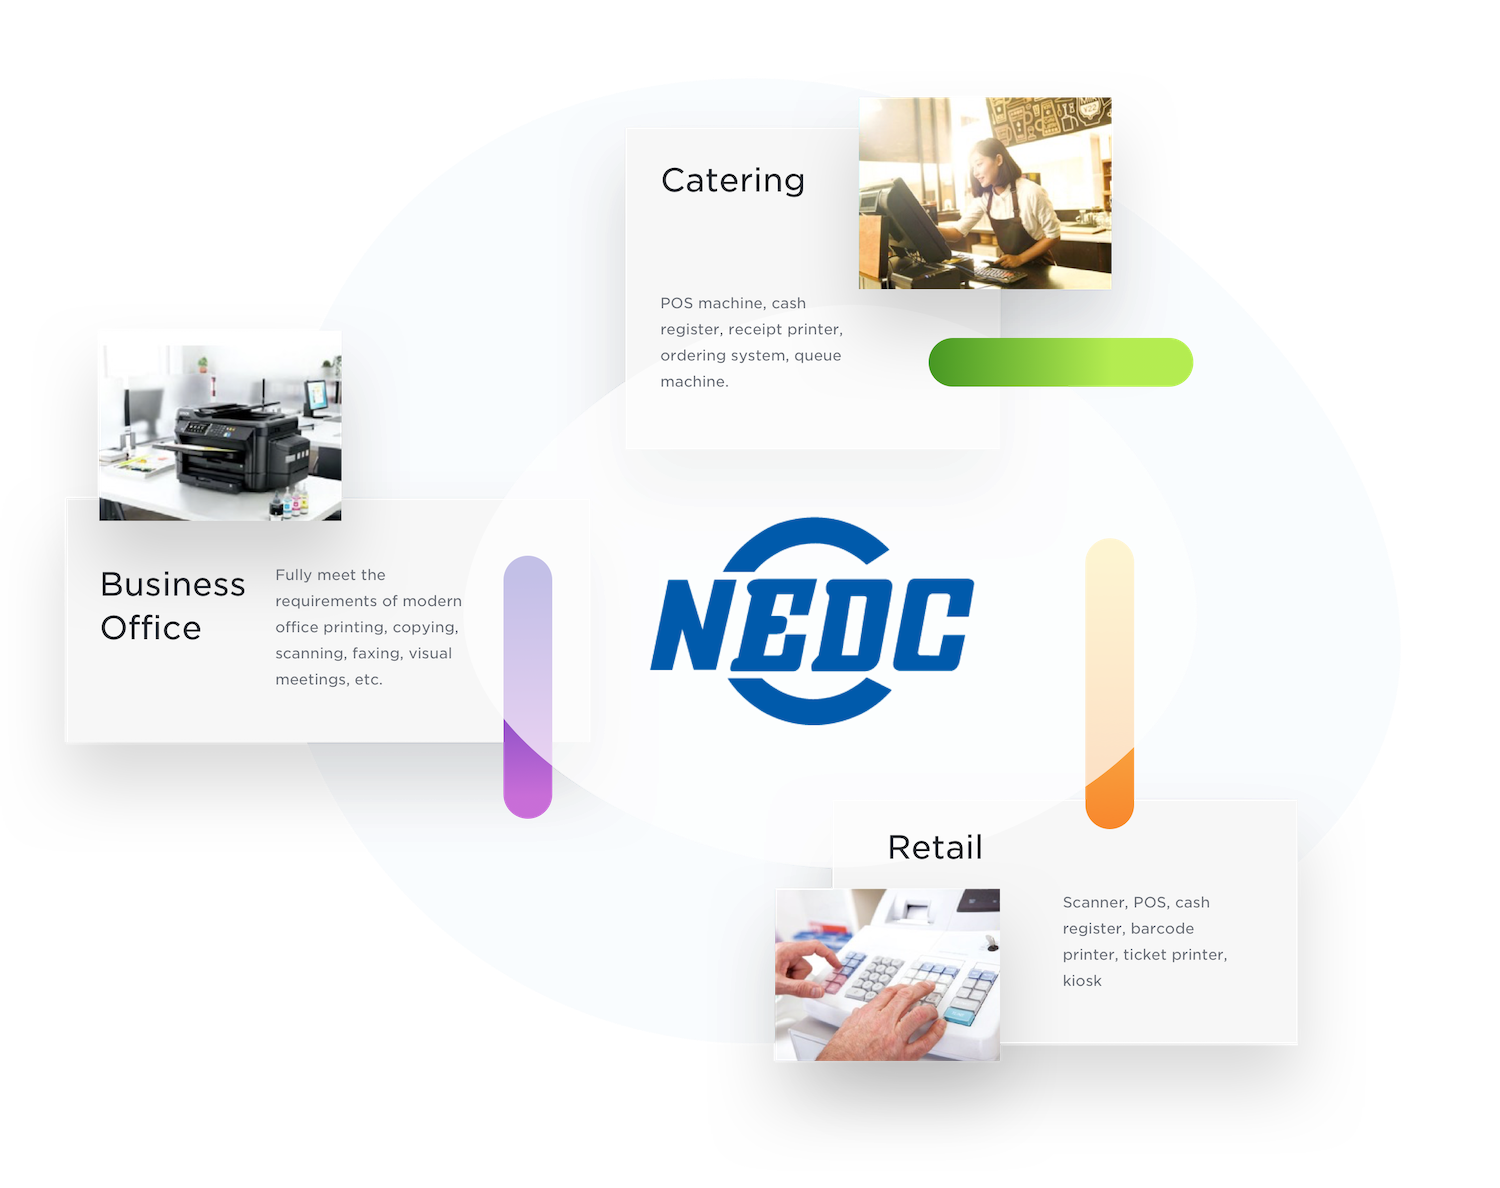 CNEDC- China National Electronic Devices Corp is China's market leader in IT solutions